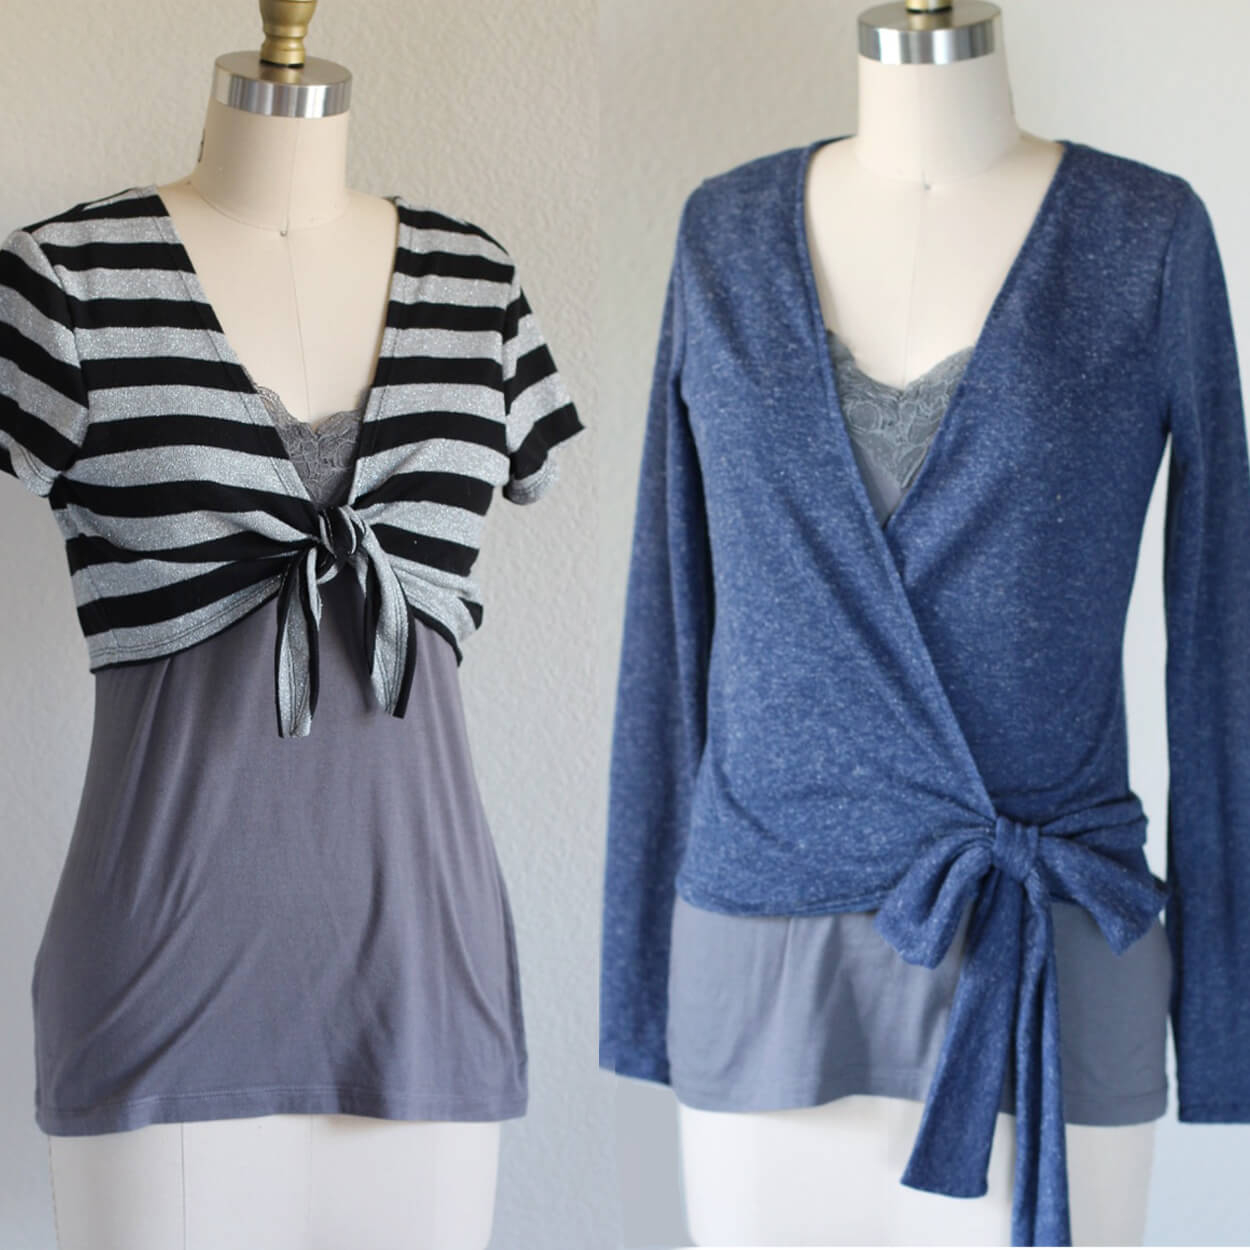 Ballet Cardigan Knitting Pattern Copeland Cardi Tie Front Cardigan And Ballet Wrap Sweater Top For Women